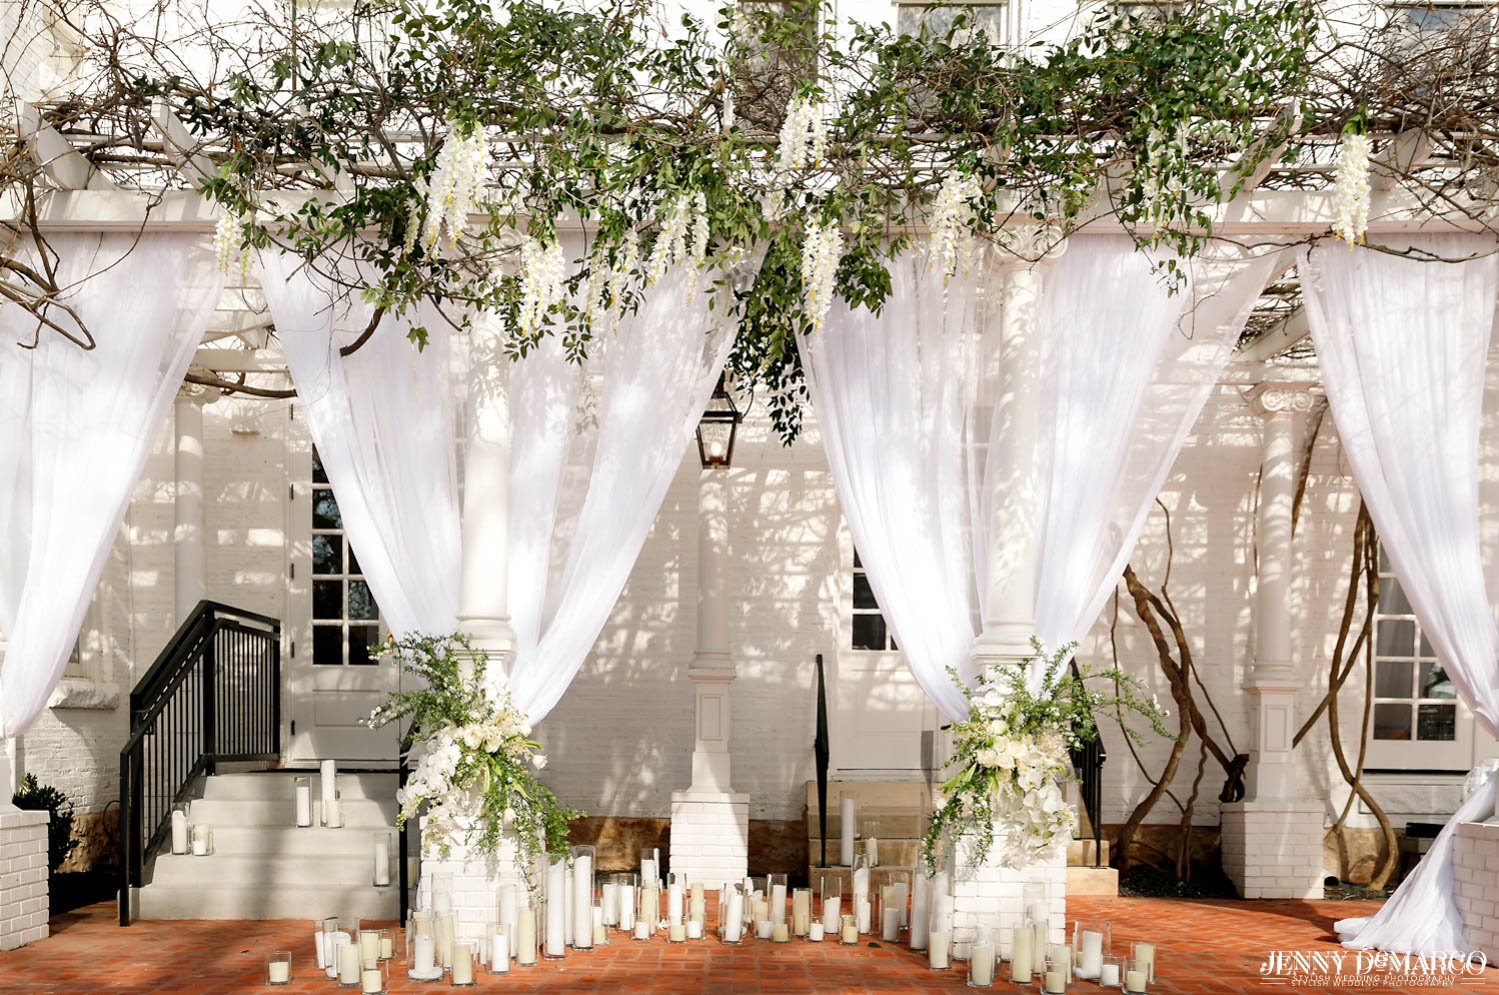 ceremony location with a  multitude of candles covering the floor and white drapes on the pillars of the mansion